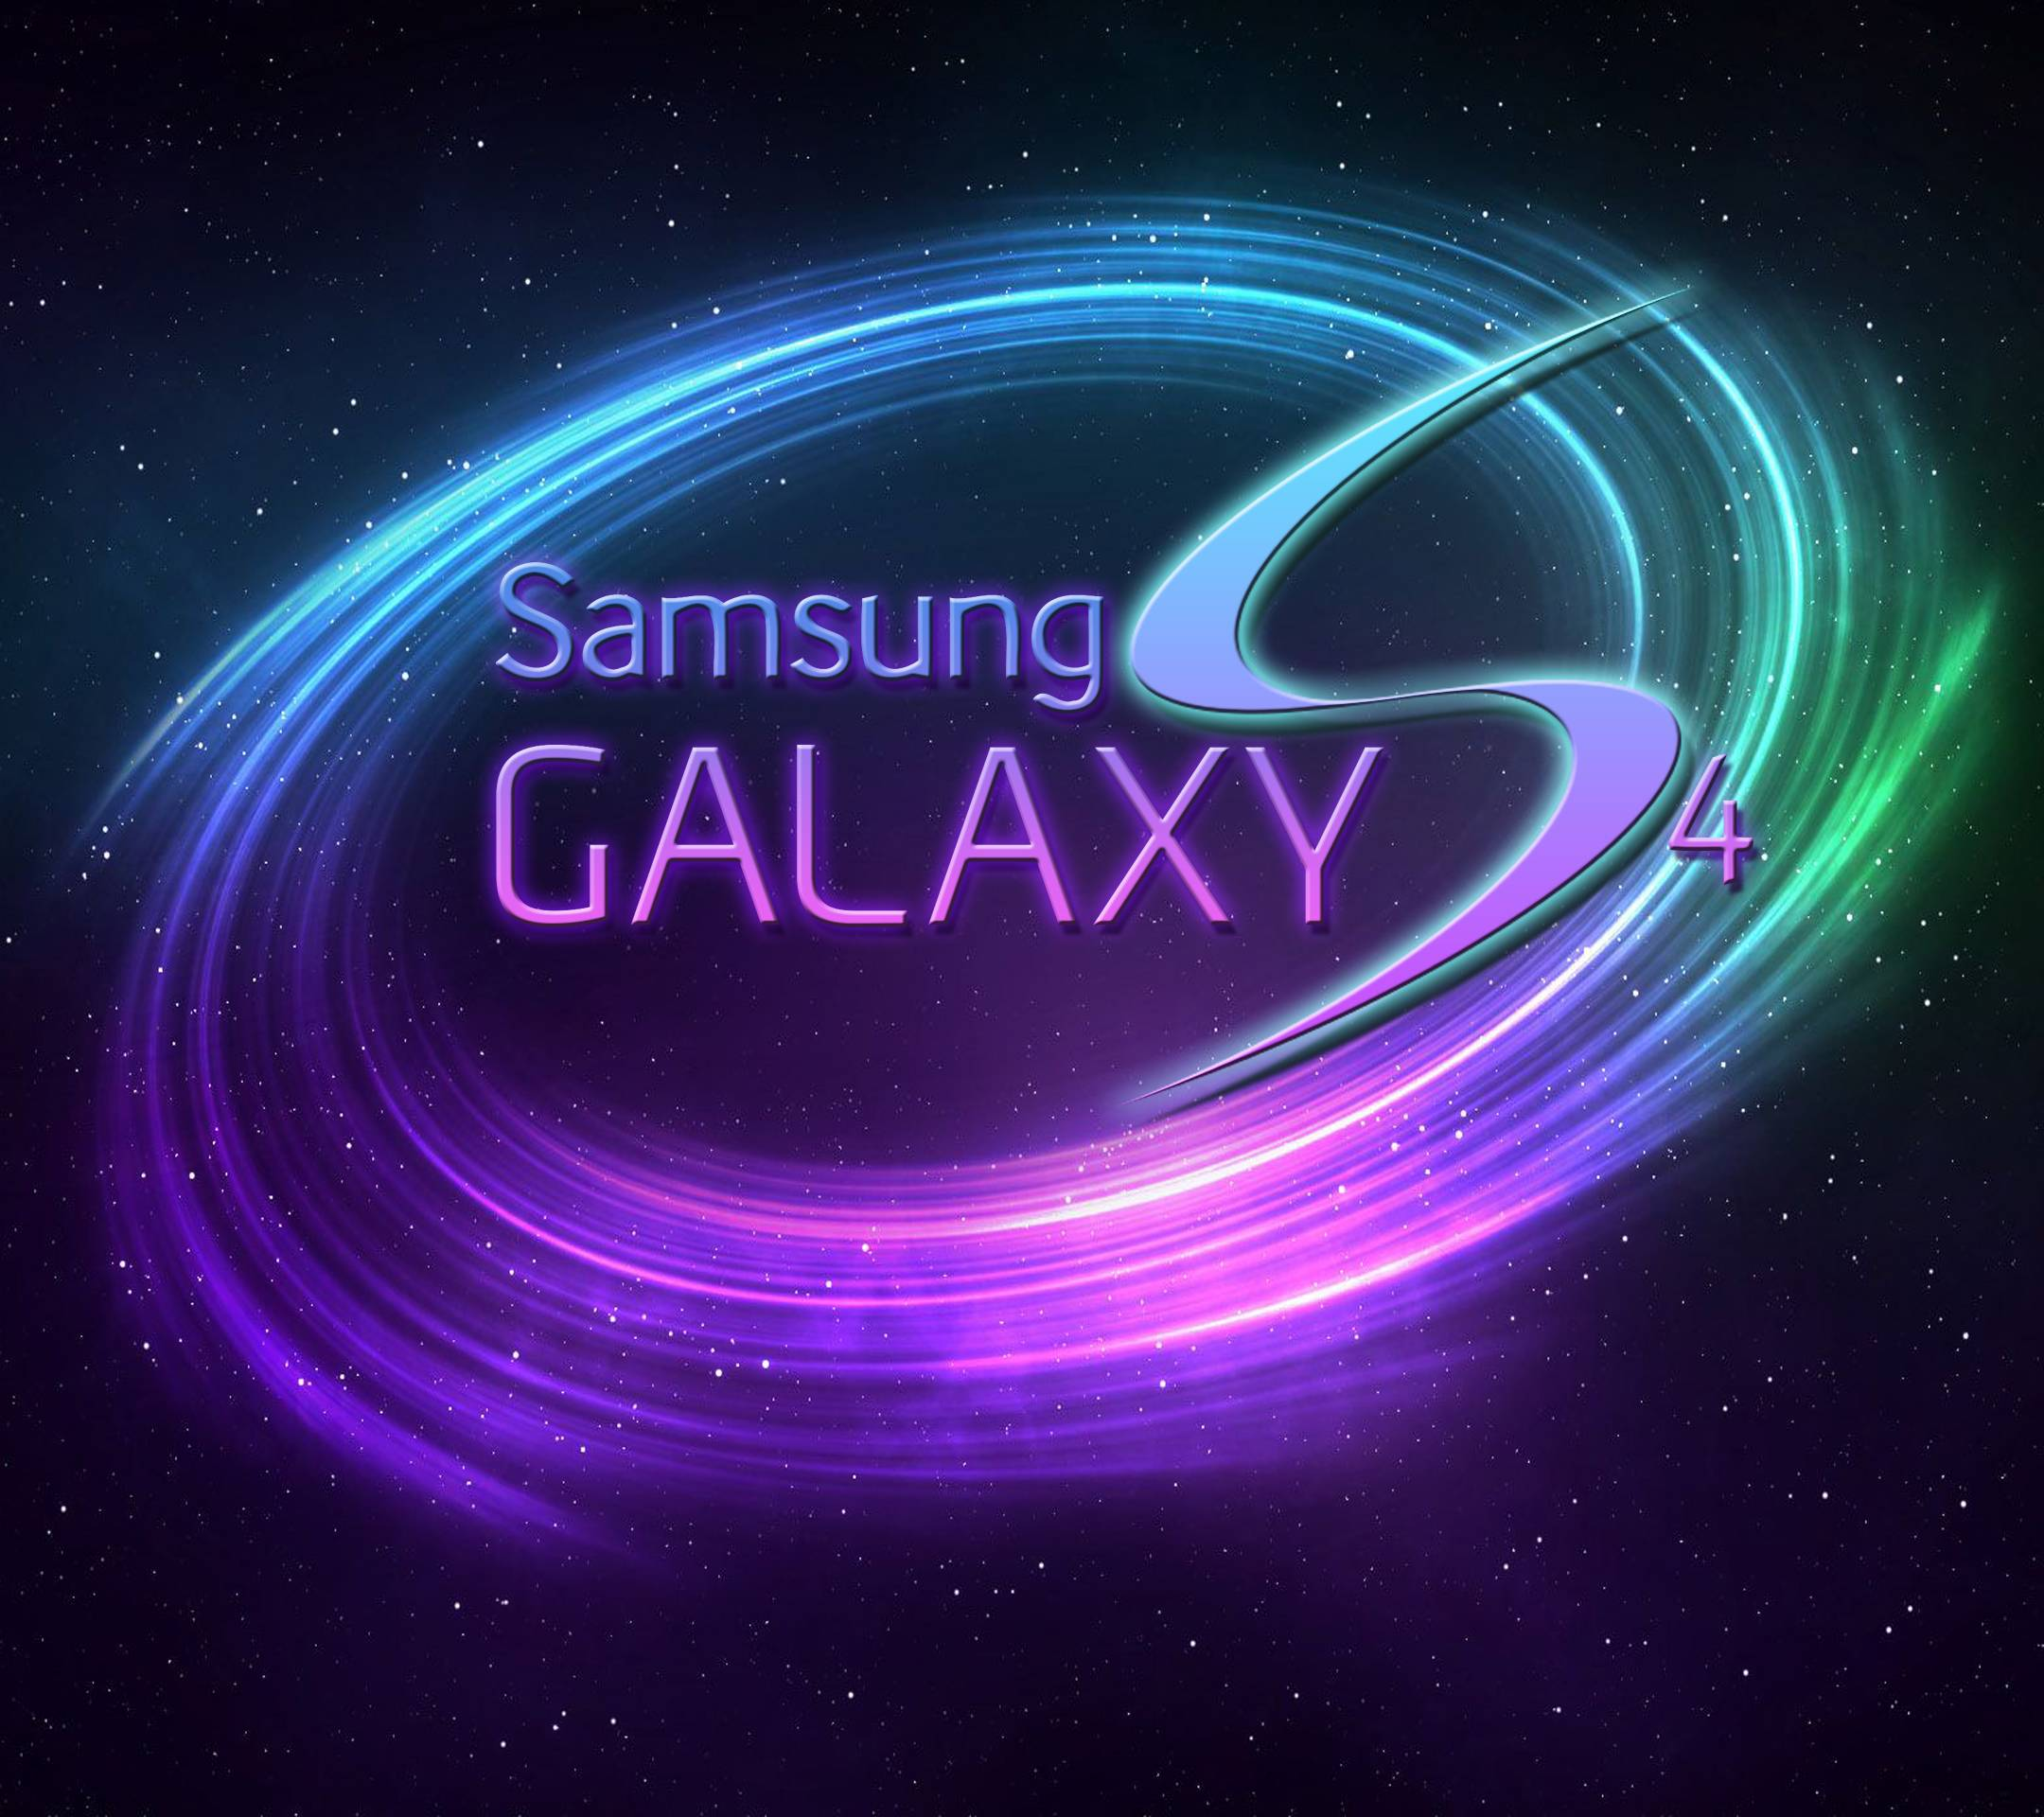 Samsung Logo Wallpapers Hd